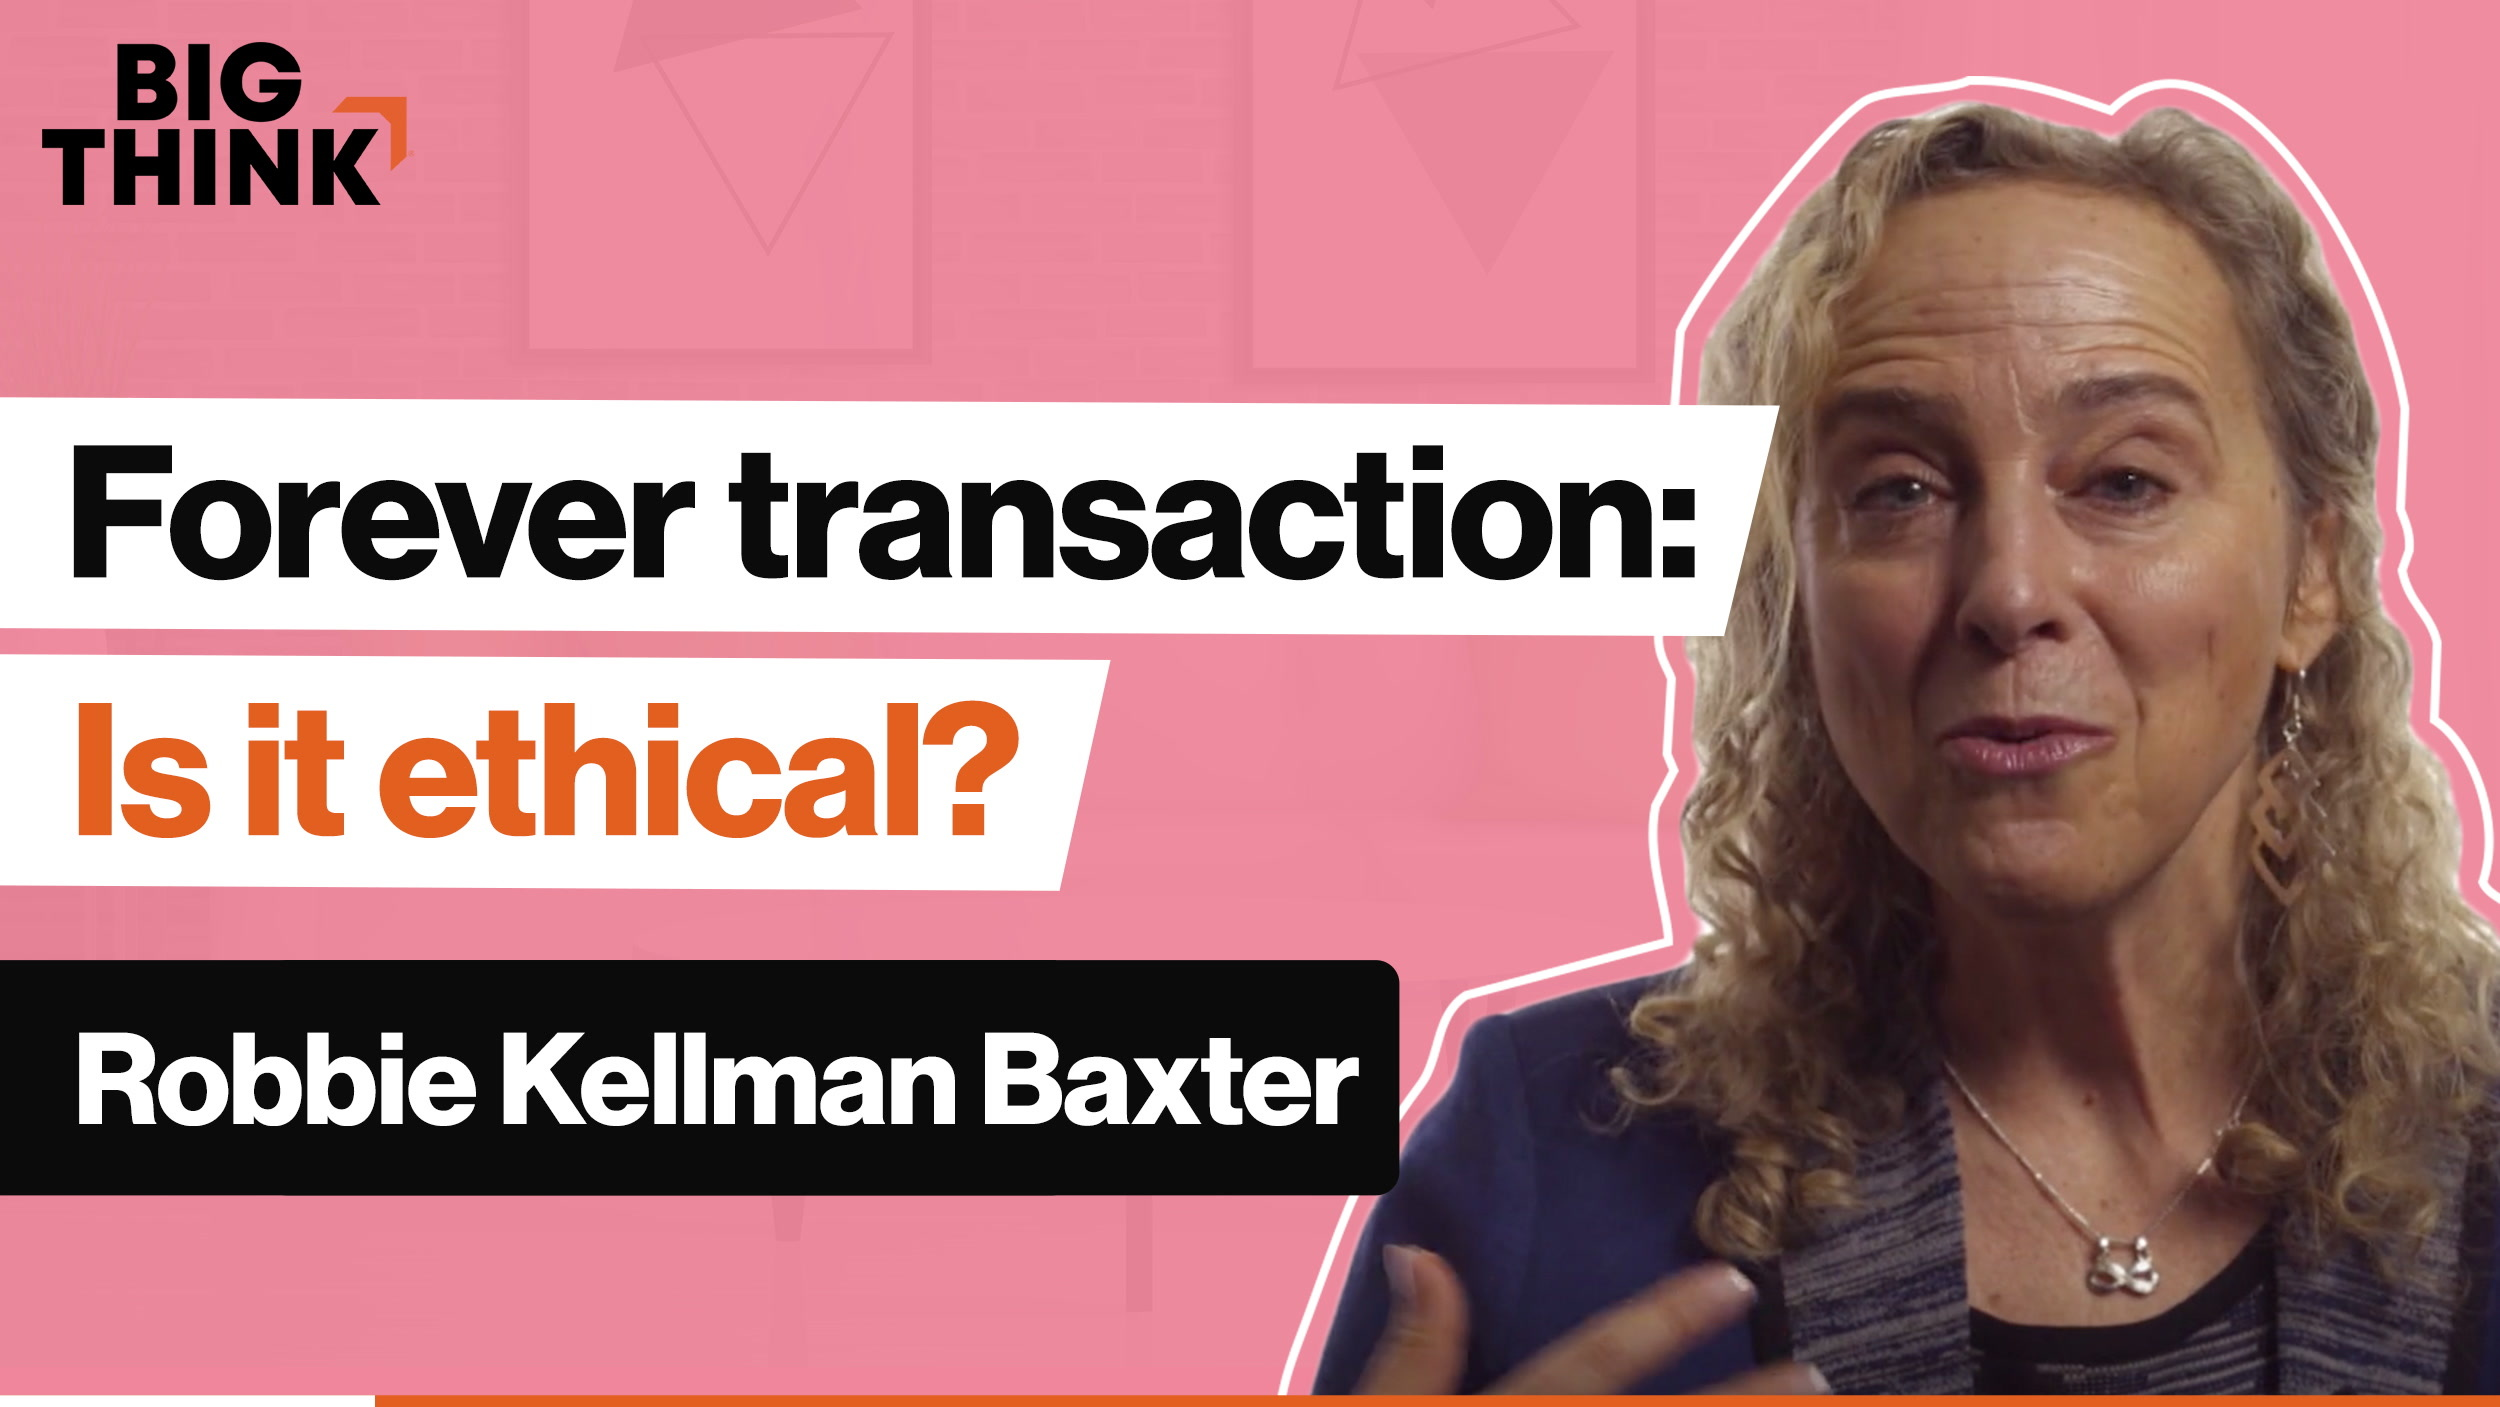 Is the 'forever transaction' business model ethical?